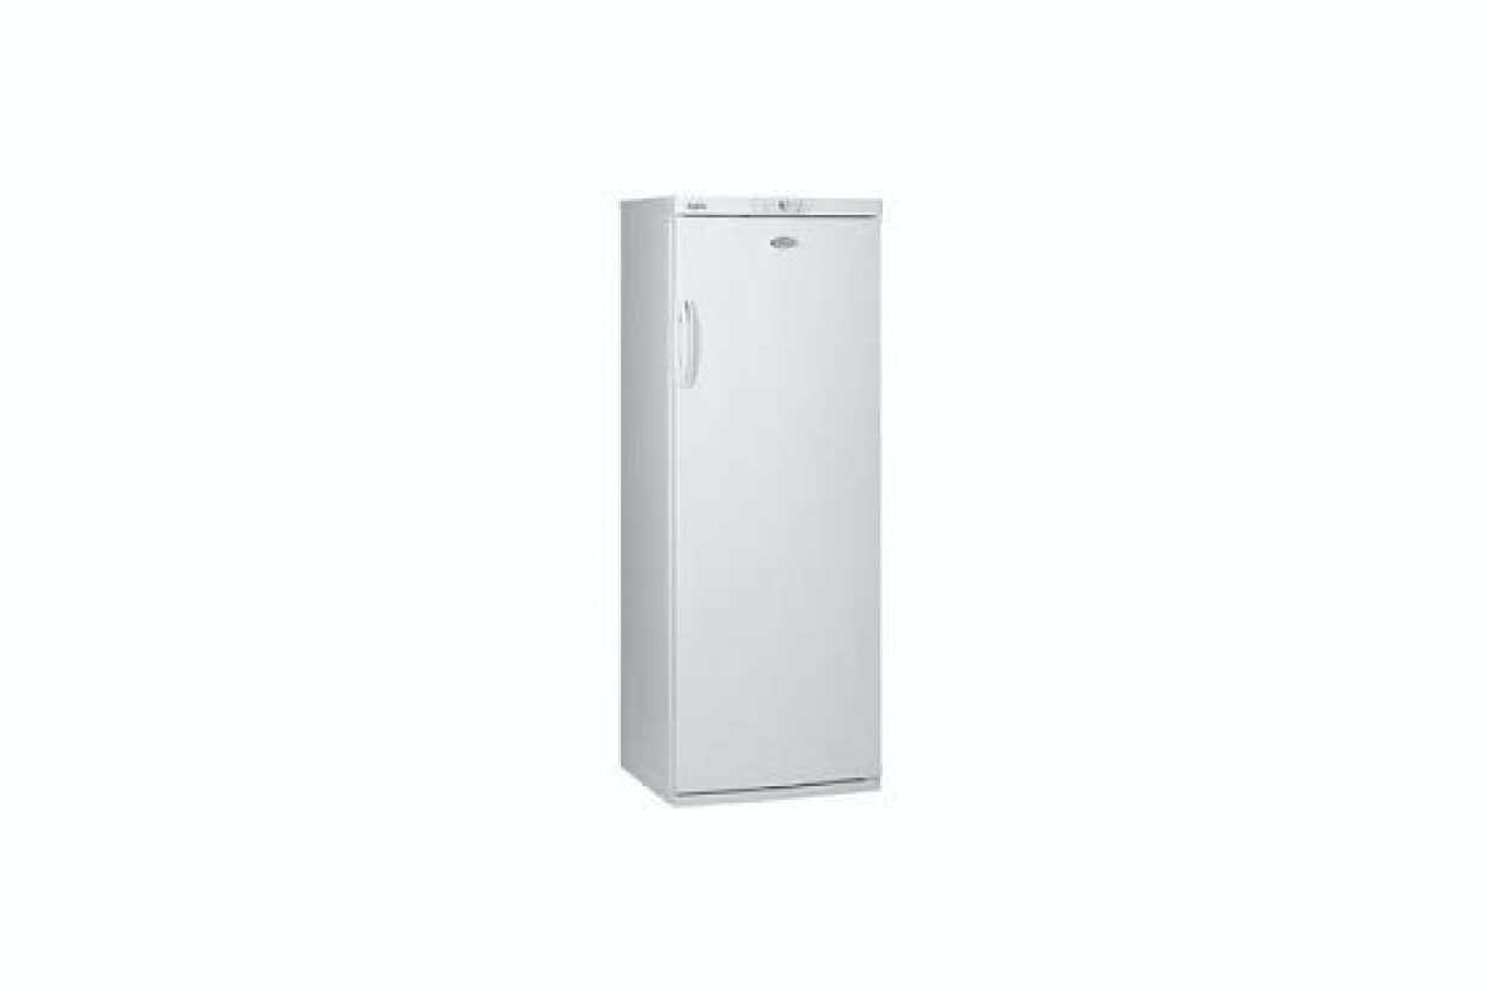 Belling Freestanding Fridge Freezer | BL234WH